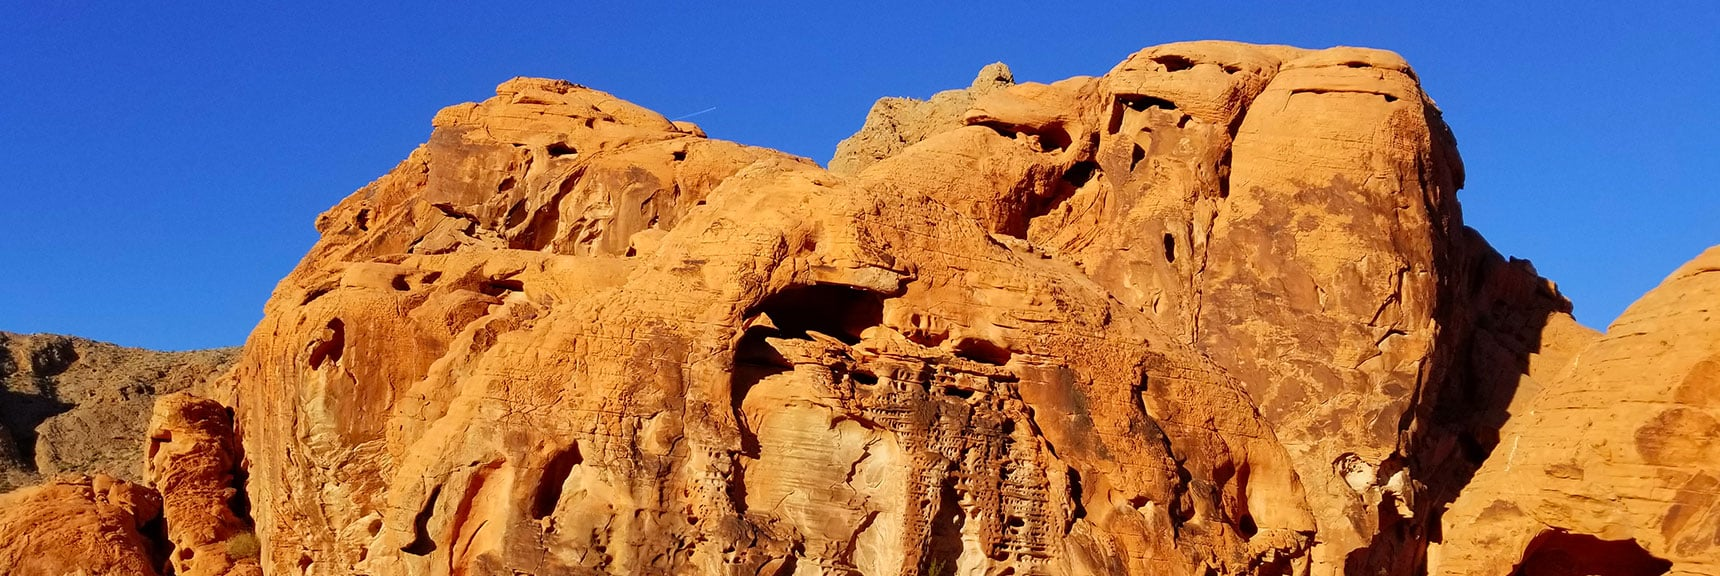 Bizarre Rock Formations in the Upper Pass on Prospect Trail in Valley of Fire State Park, Nevada